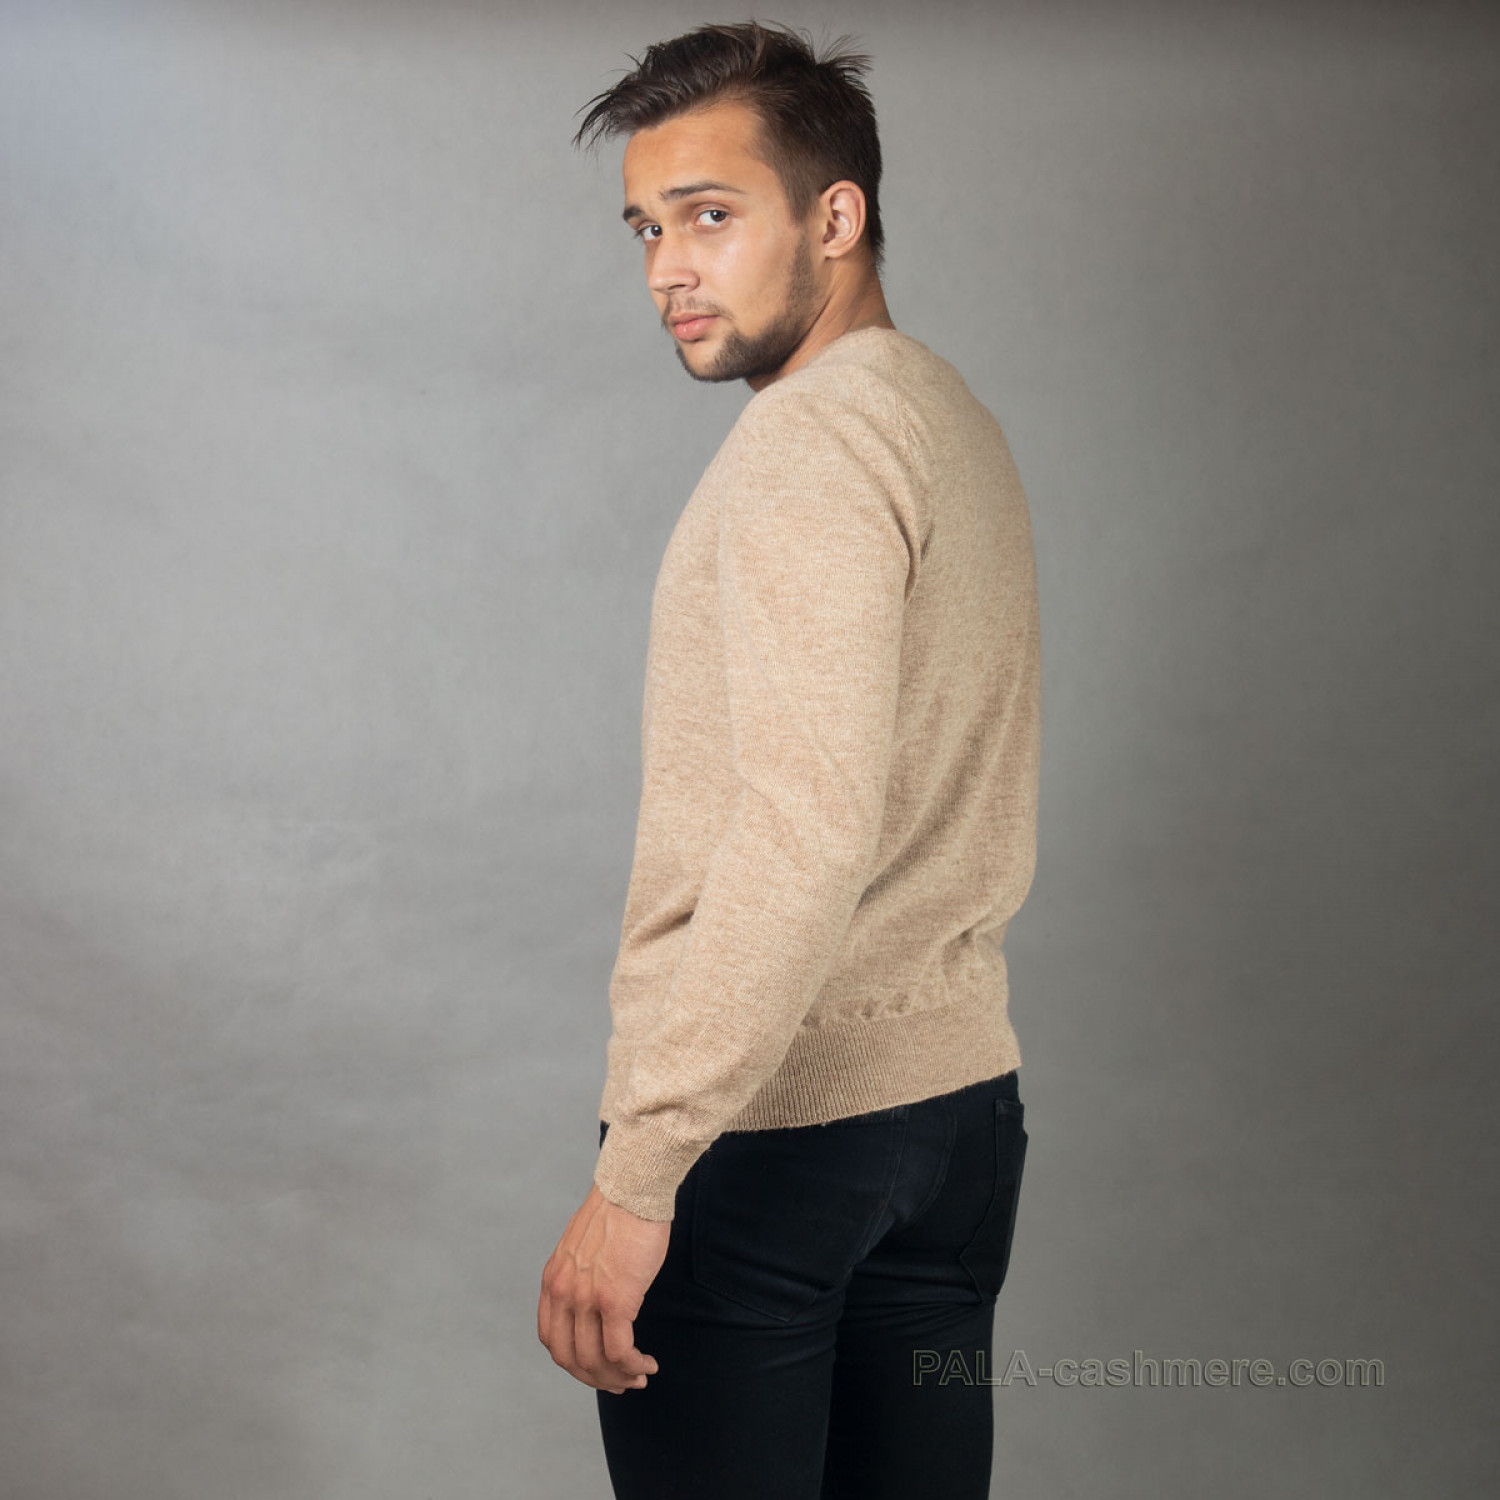 Camel hair pullover for men